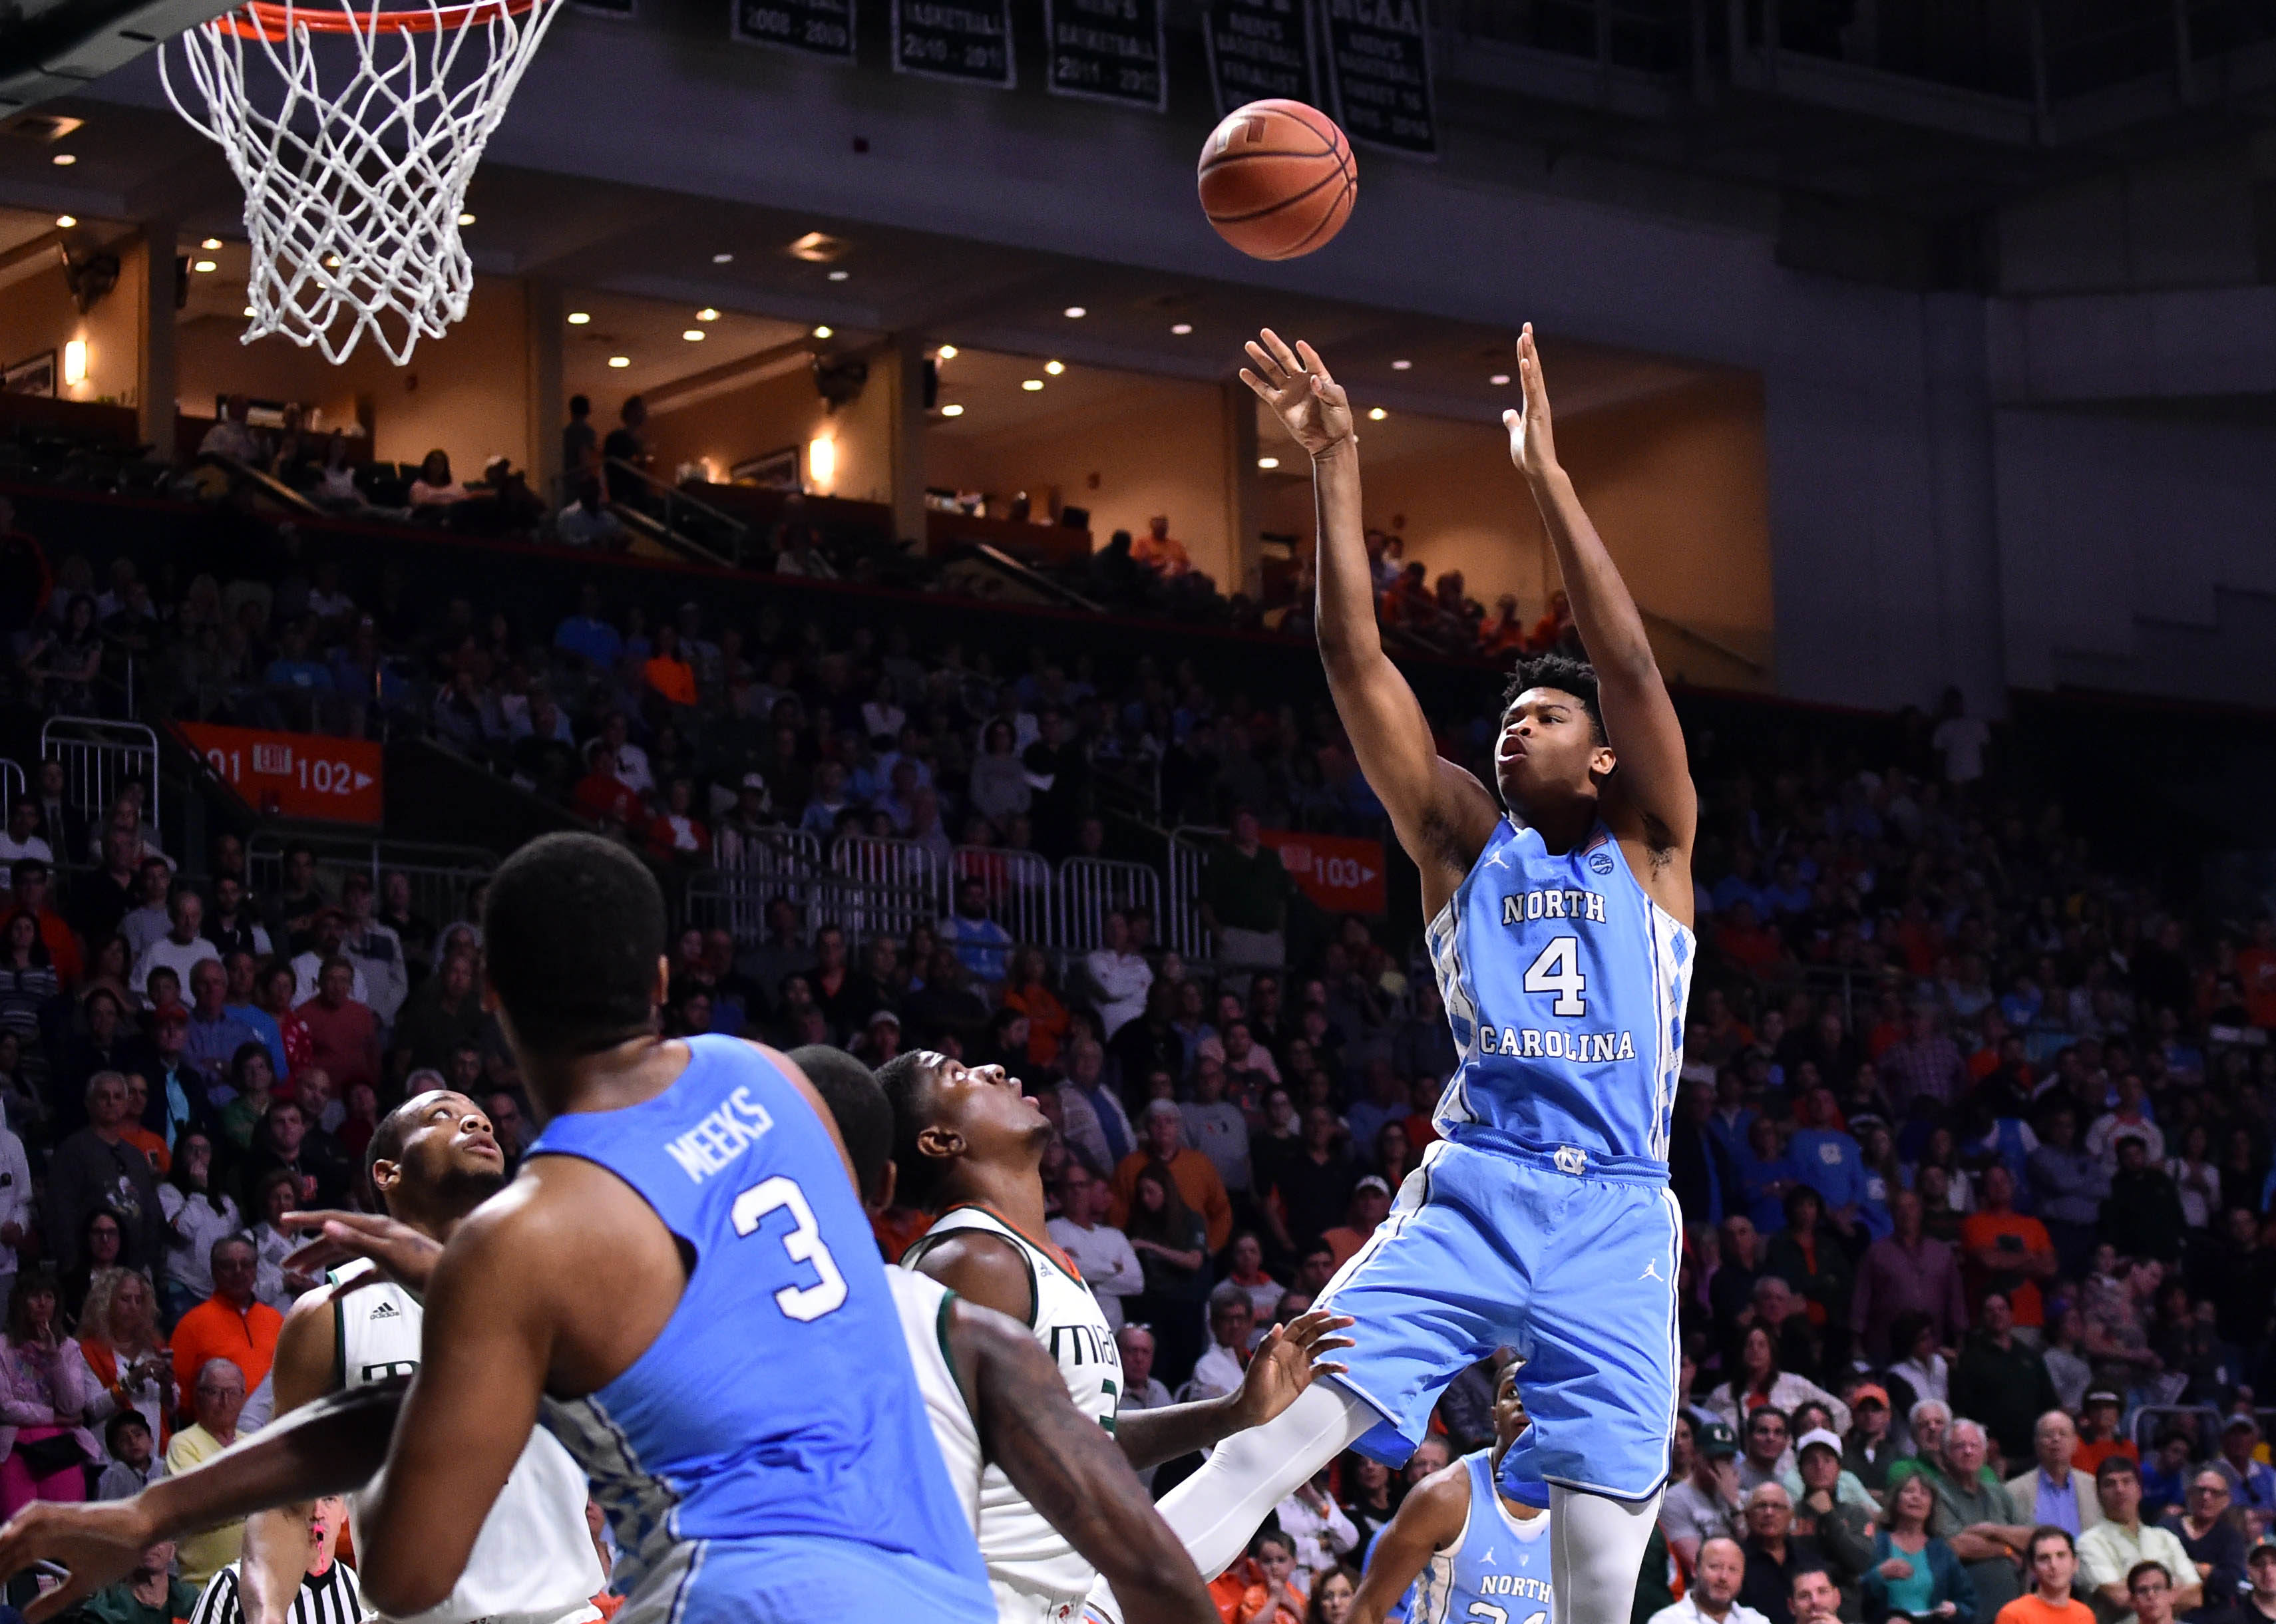 Jan 28, 2017; Coral Gables, FL, USA; North Carolina Tar Heels forward Kennedy Meeks (3) shoots over Miami Hurricanes forward Anthony Lawrence Jr. (3) during the first half at Watsco Center. Mandatory Credit: Steve Mitchell-USA TODAY Sports